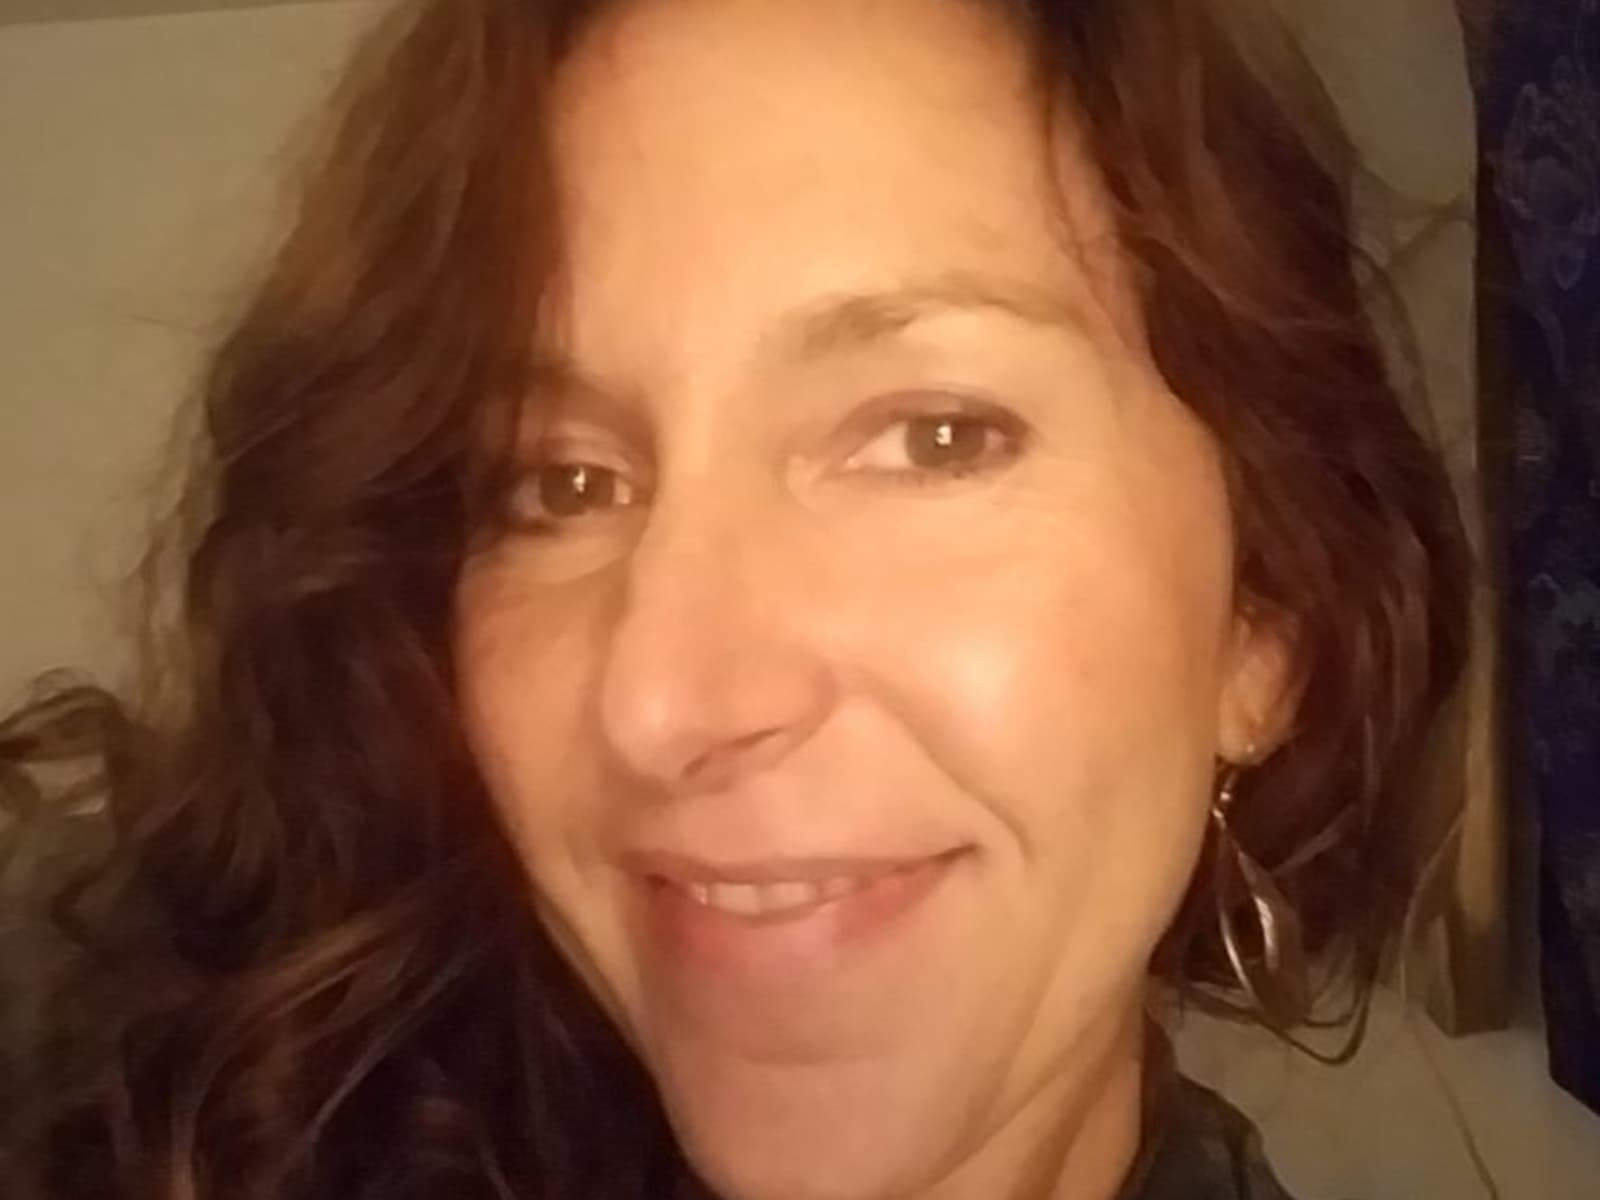 Jeanne from Taos, New Mexico, United States